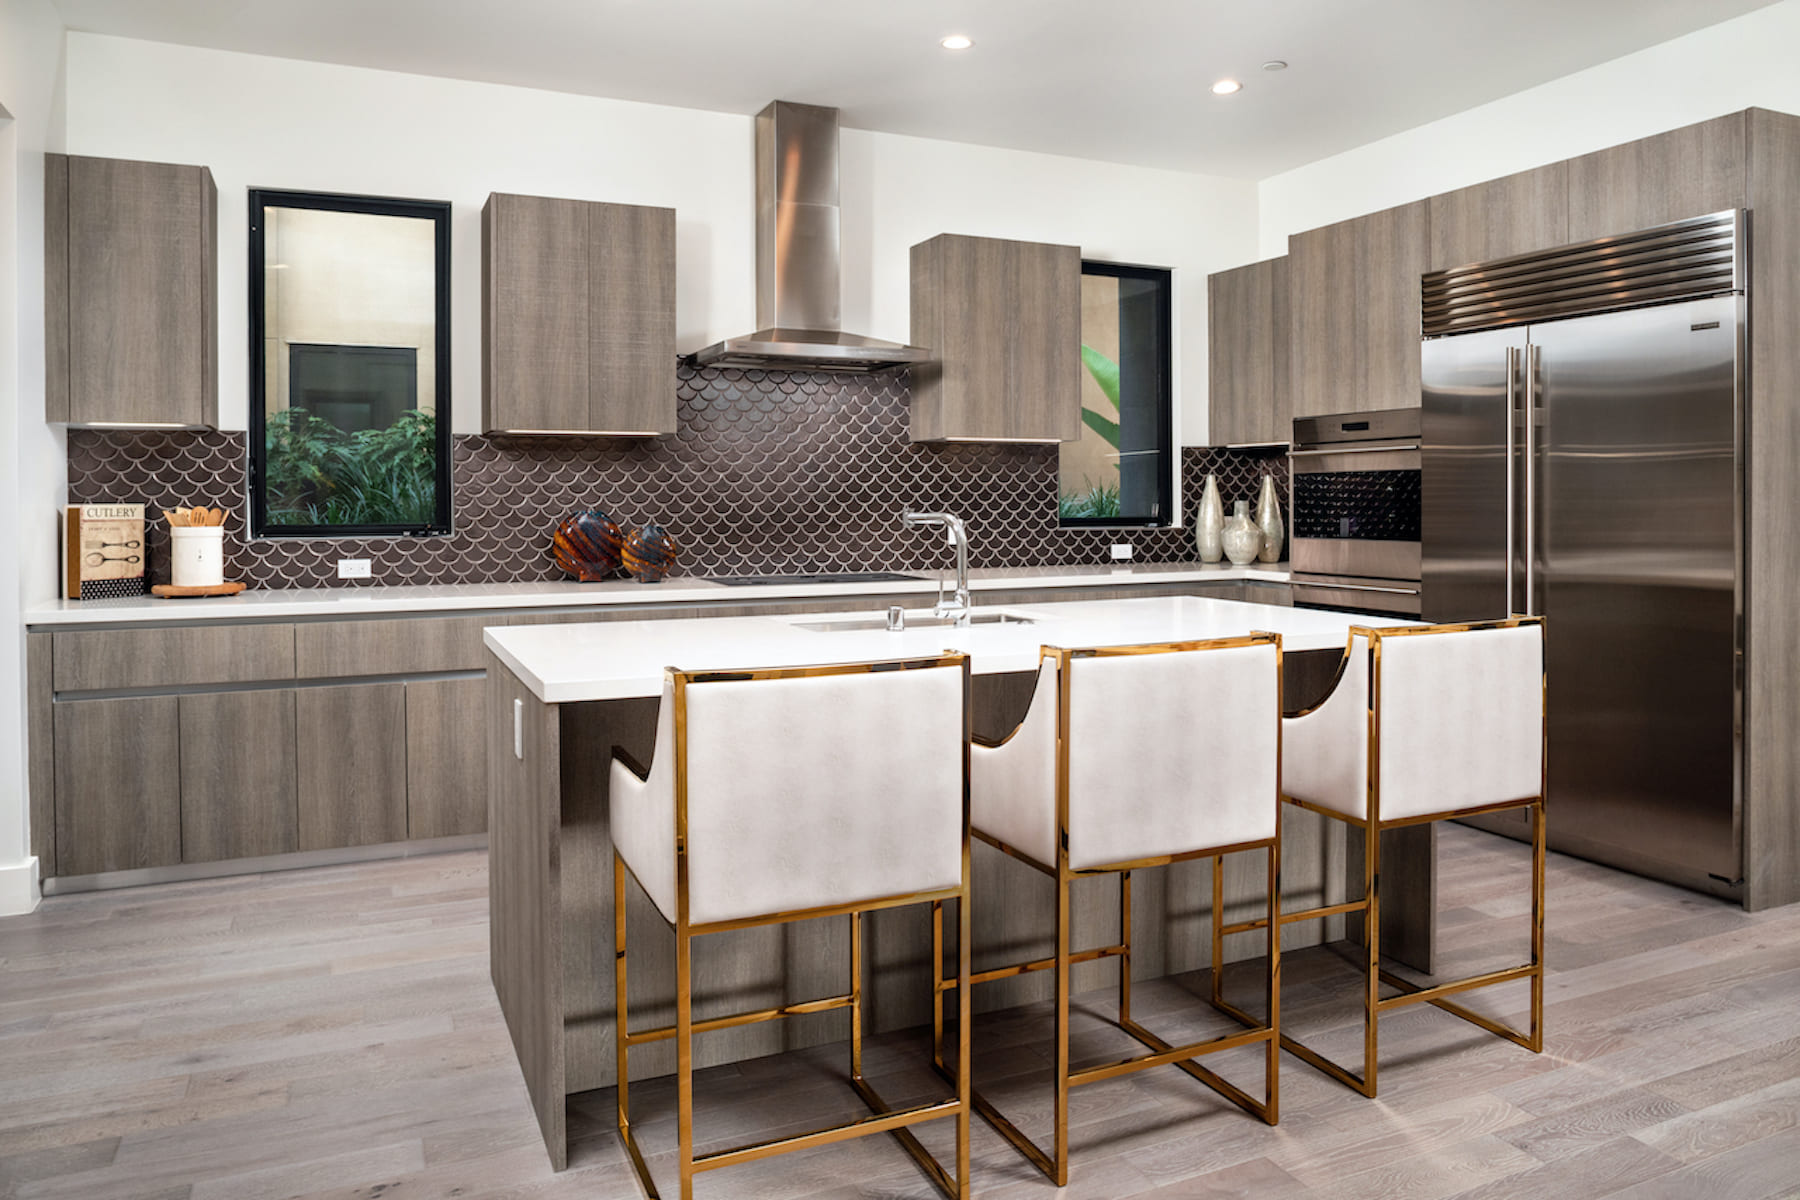 Pasadena townhomes for sale chefs kitchen